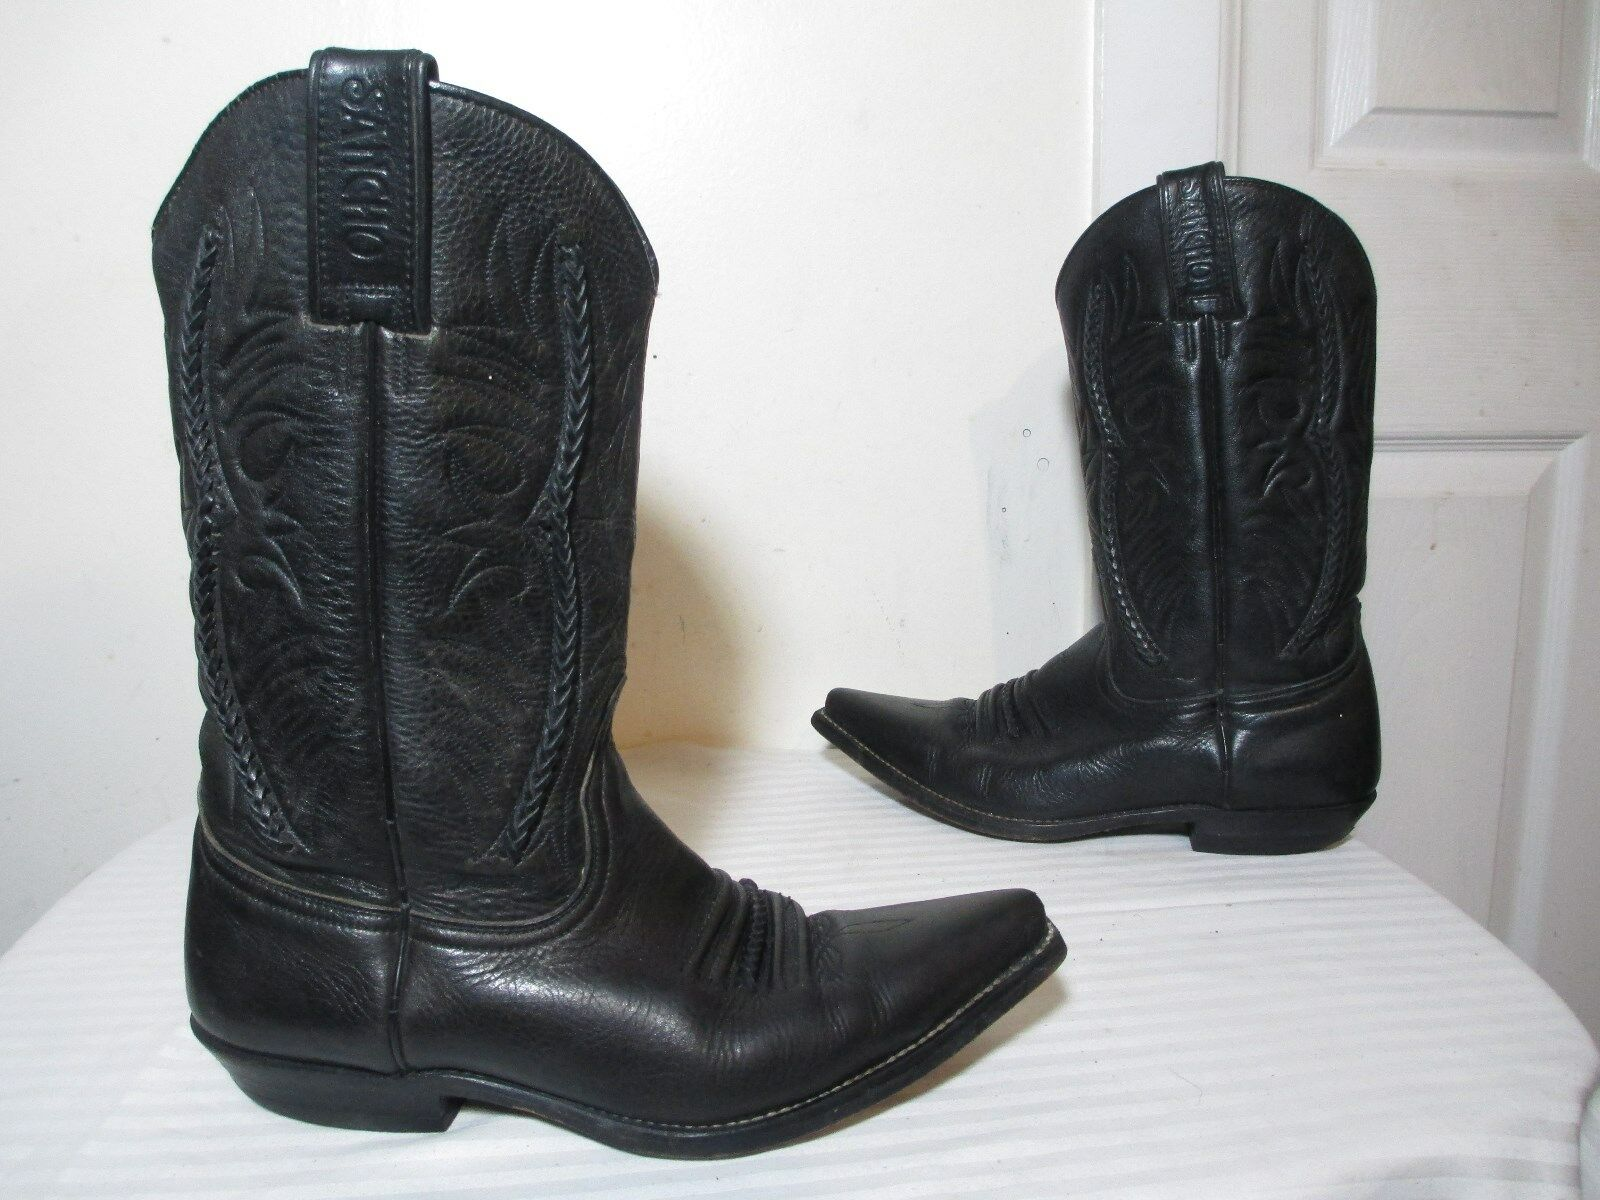 SANCHO WOMEN'S BLACK BRAIDED LEATHER WESTERN BOOTS MADE IN SPAIN SZ 7½